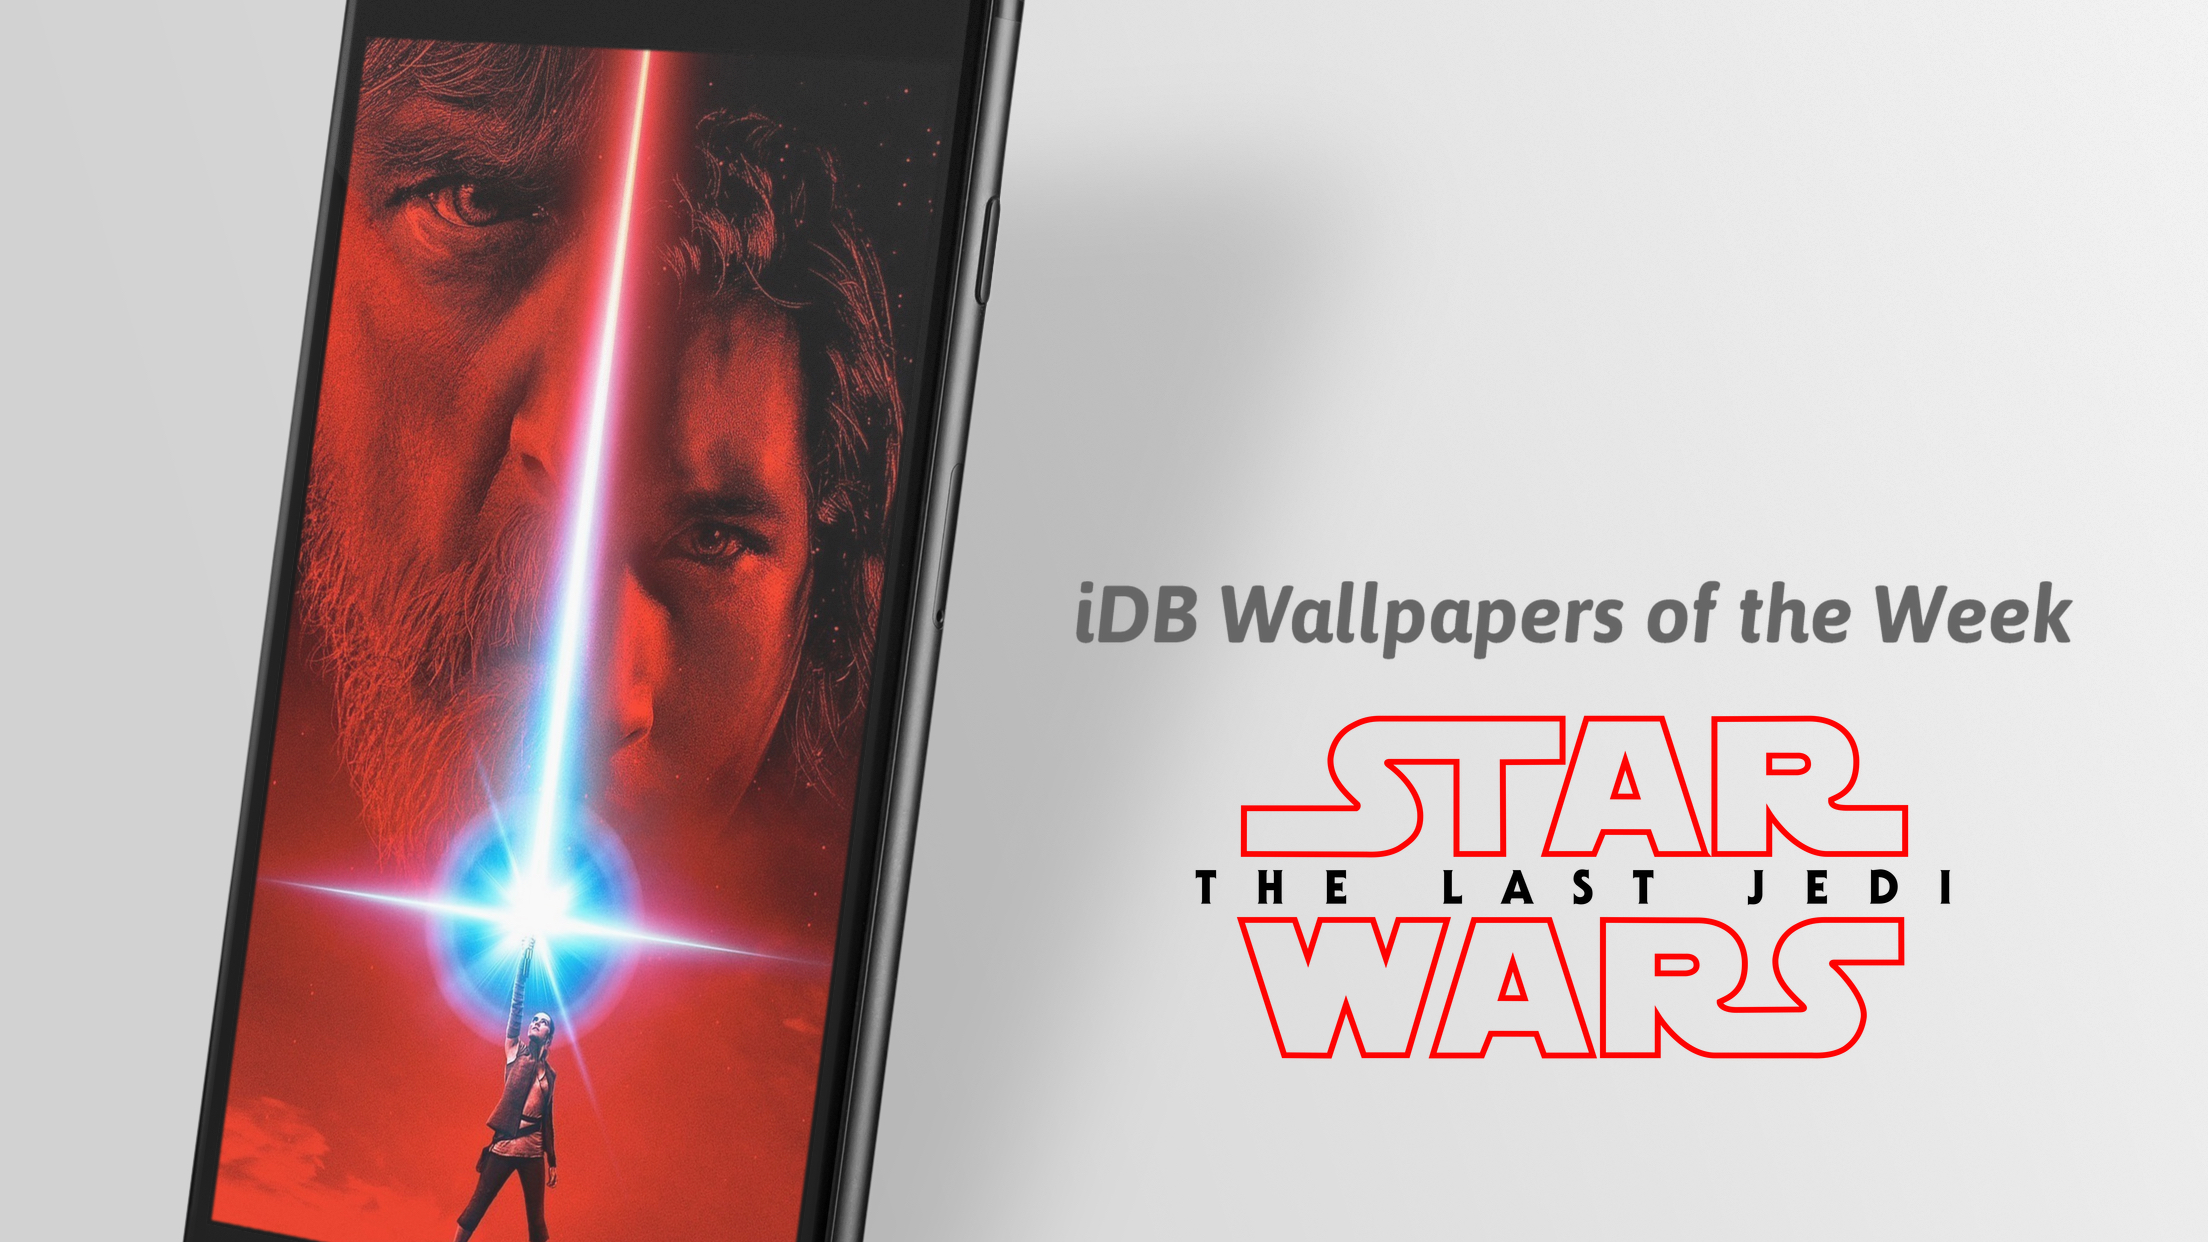 The Last Jedi wallpapers for iphone